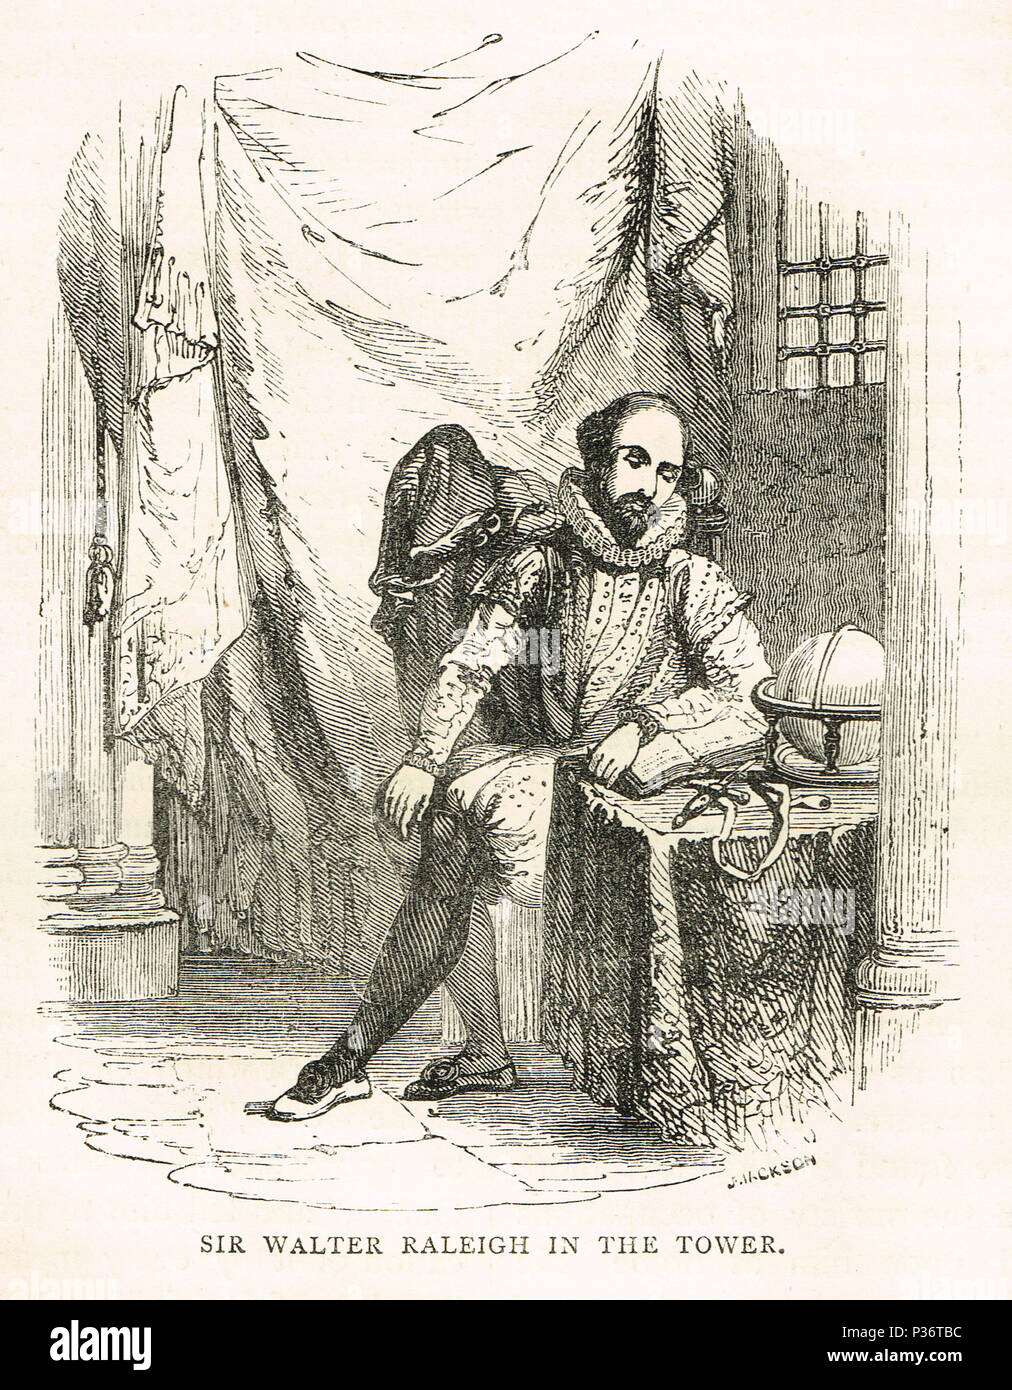 Sir Walter Raleigh, imprisoned in the Tower, 1604-16 - Stock Image